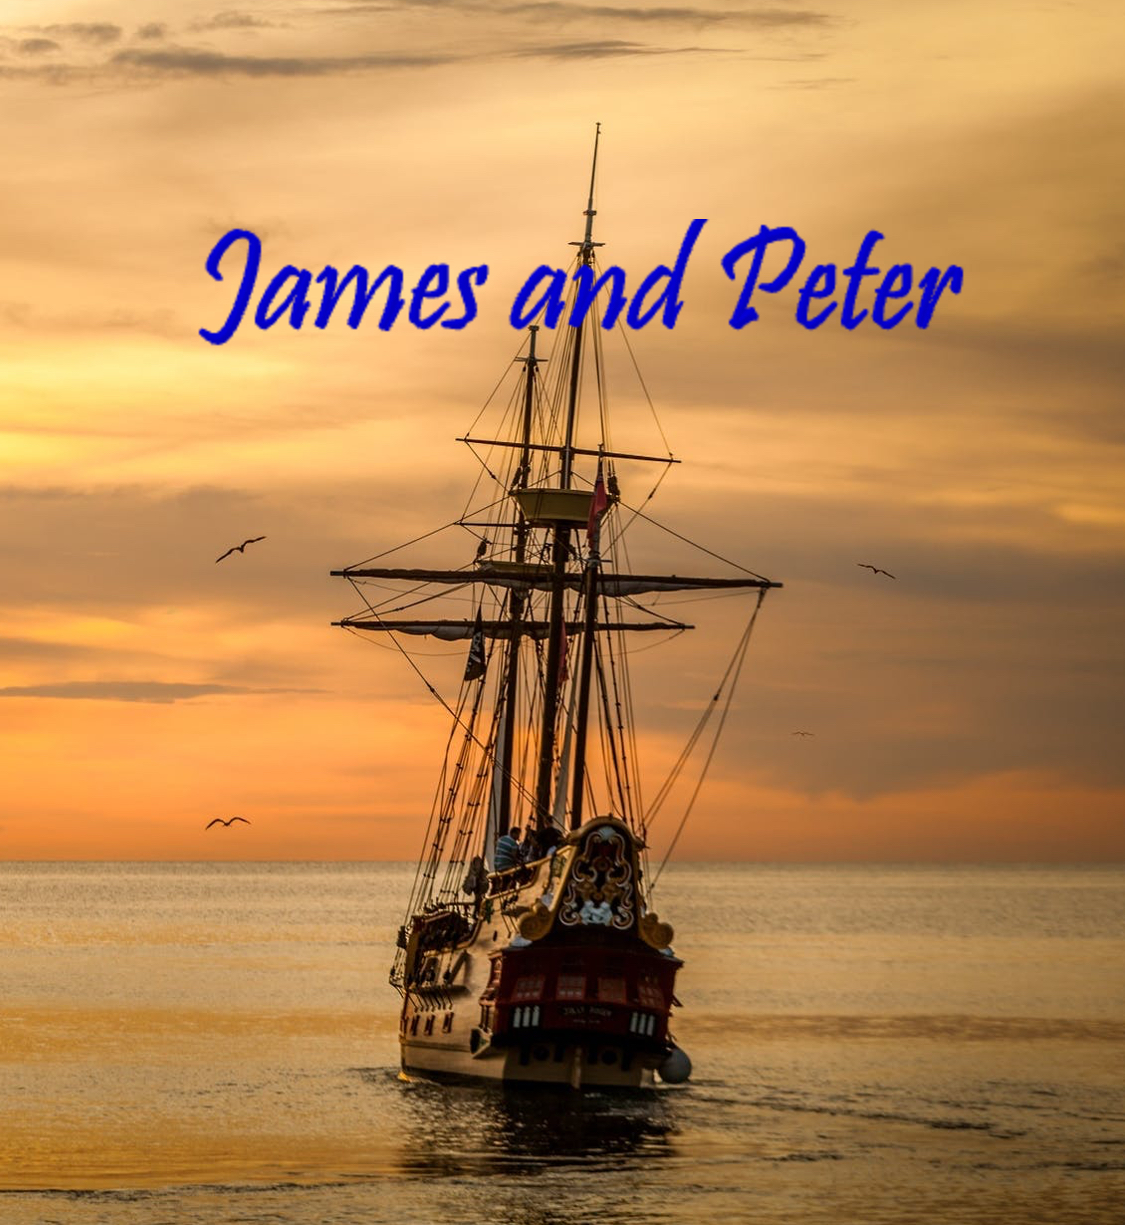 JAMES AND PETER